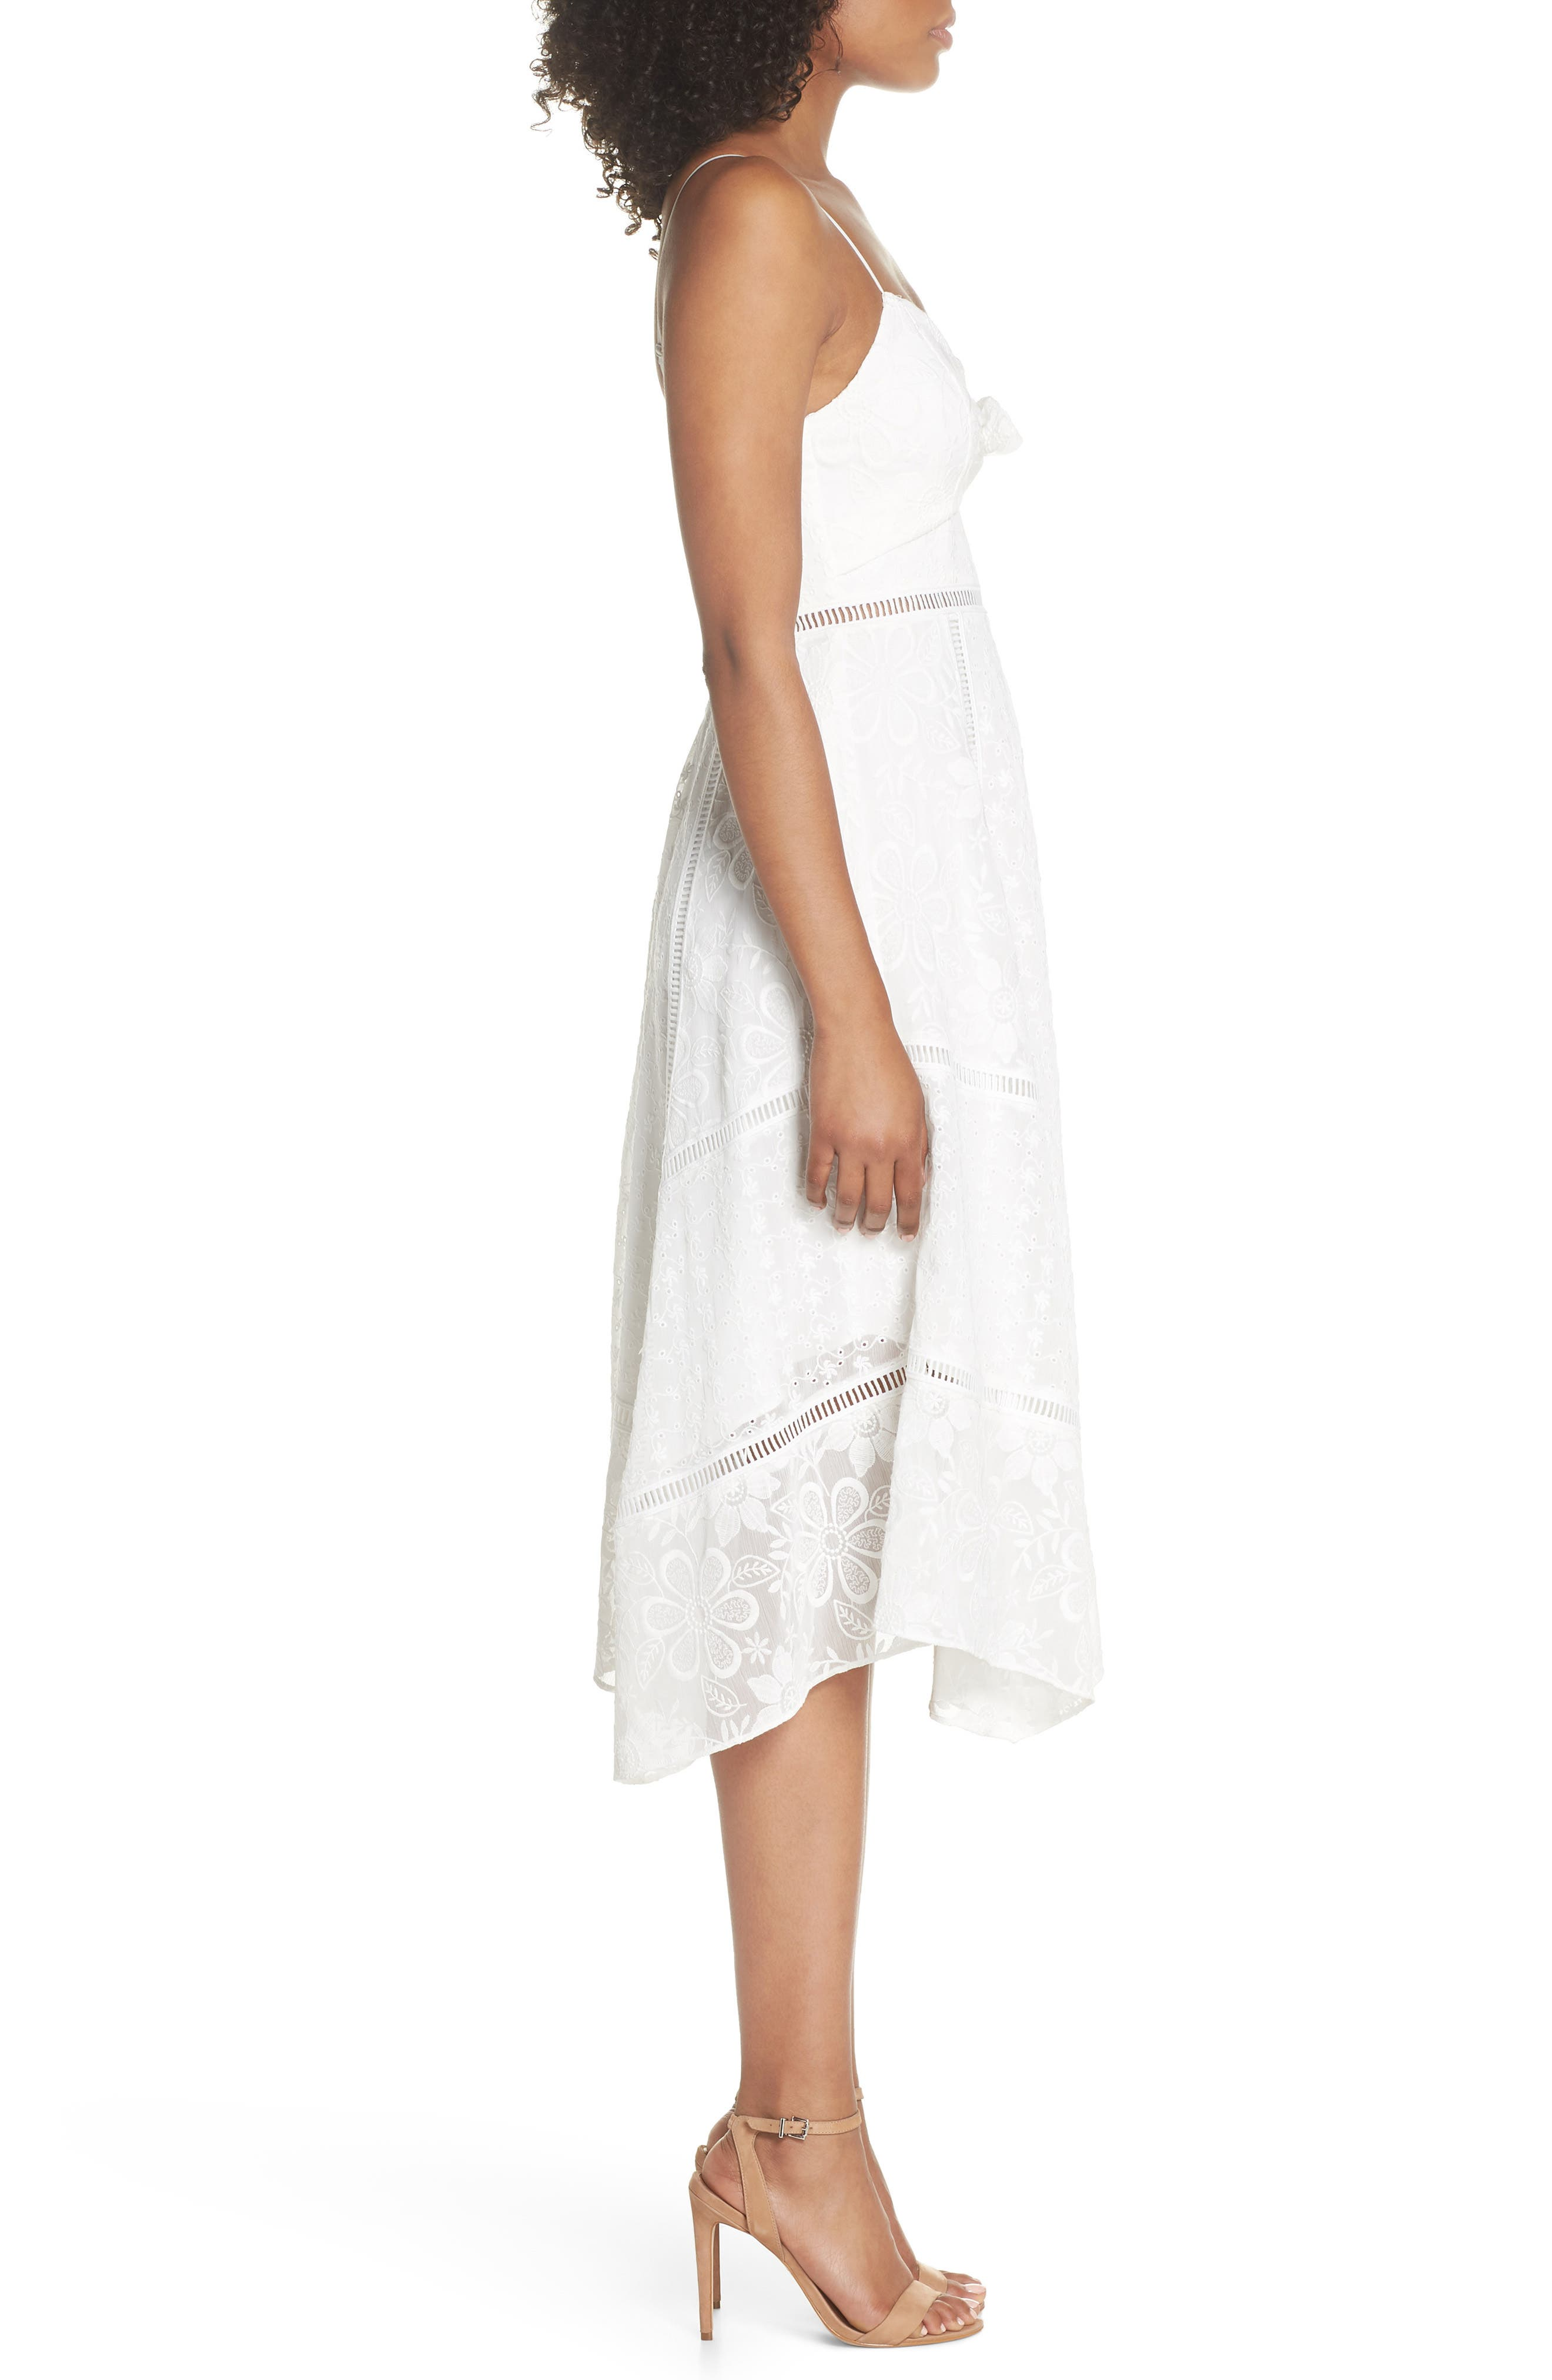 Broderie Anglaise Knot Detail Dress,                             Alternate thumbnail 3, color,                             White